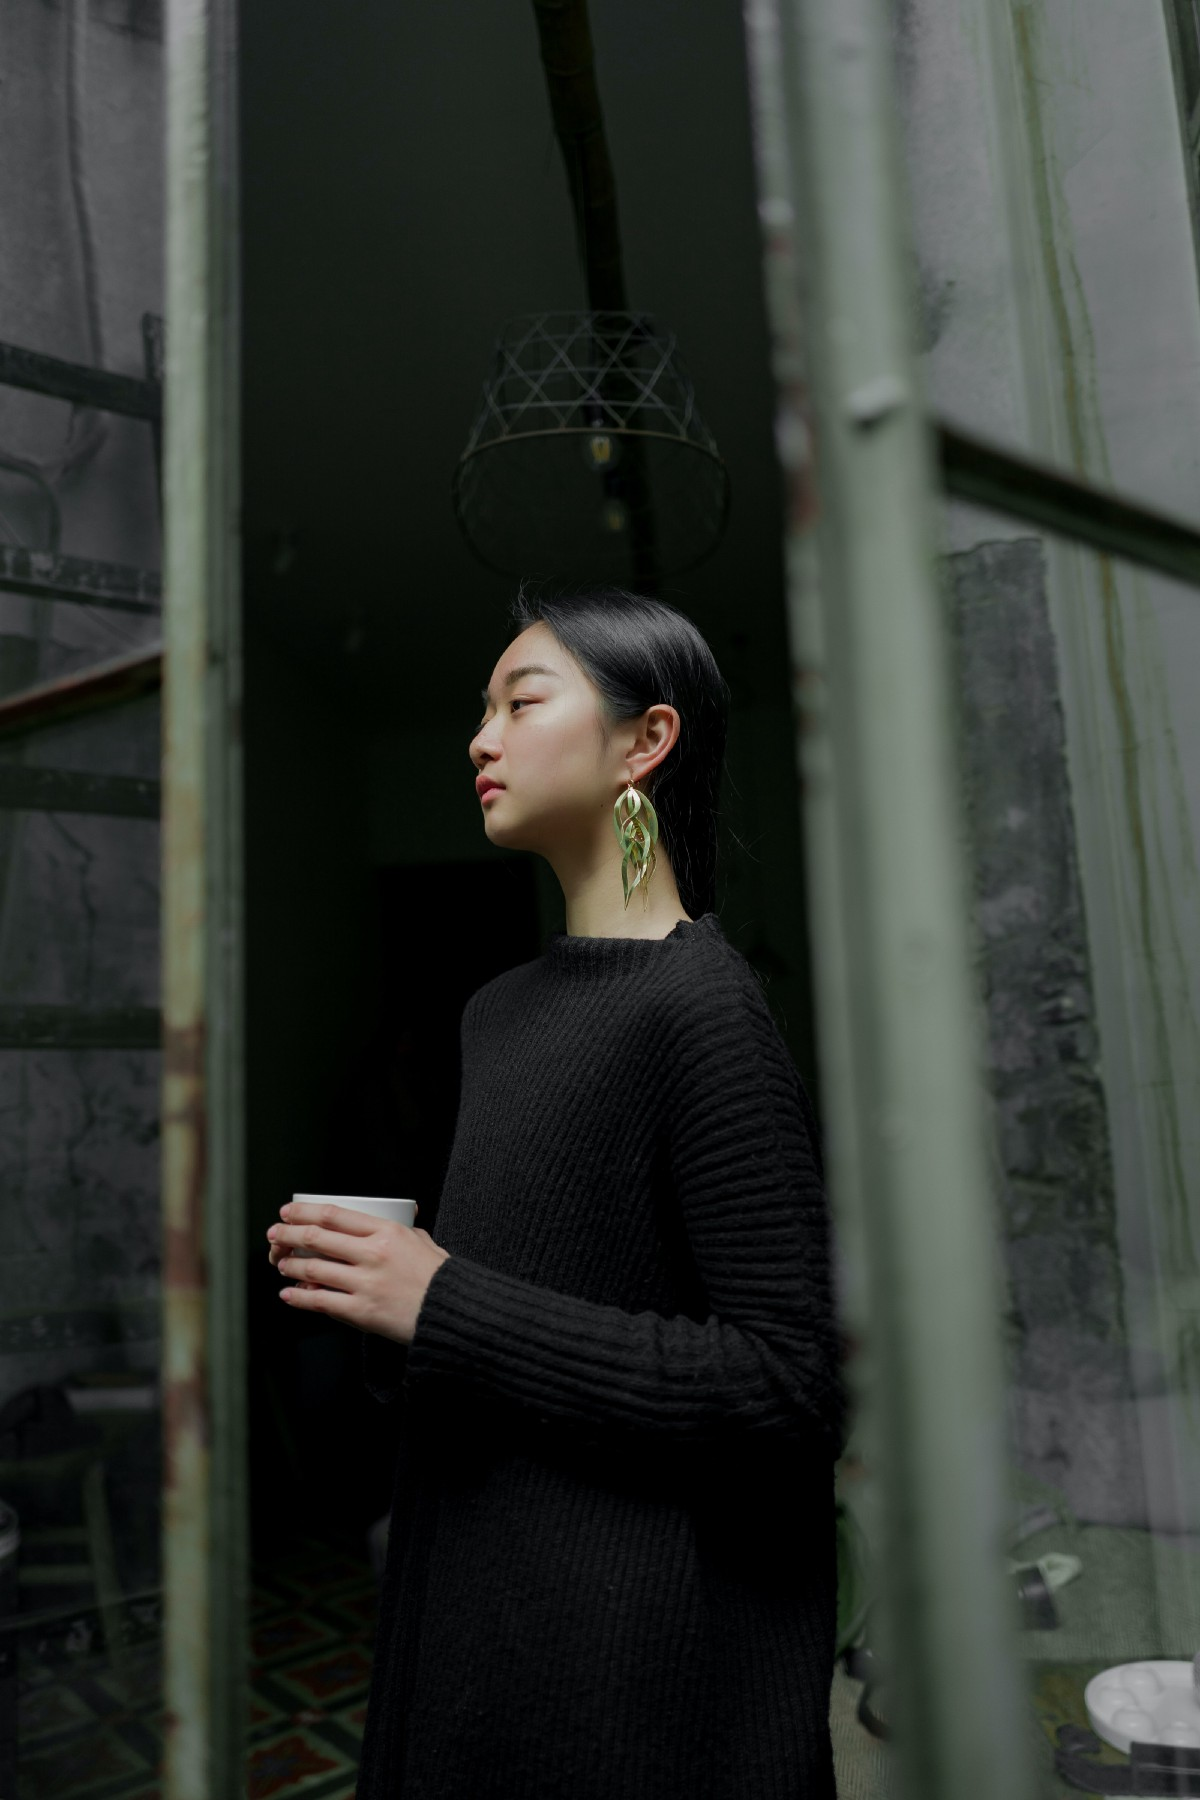 The People of Shanghai